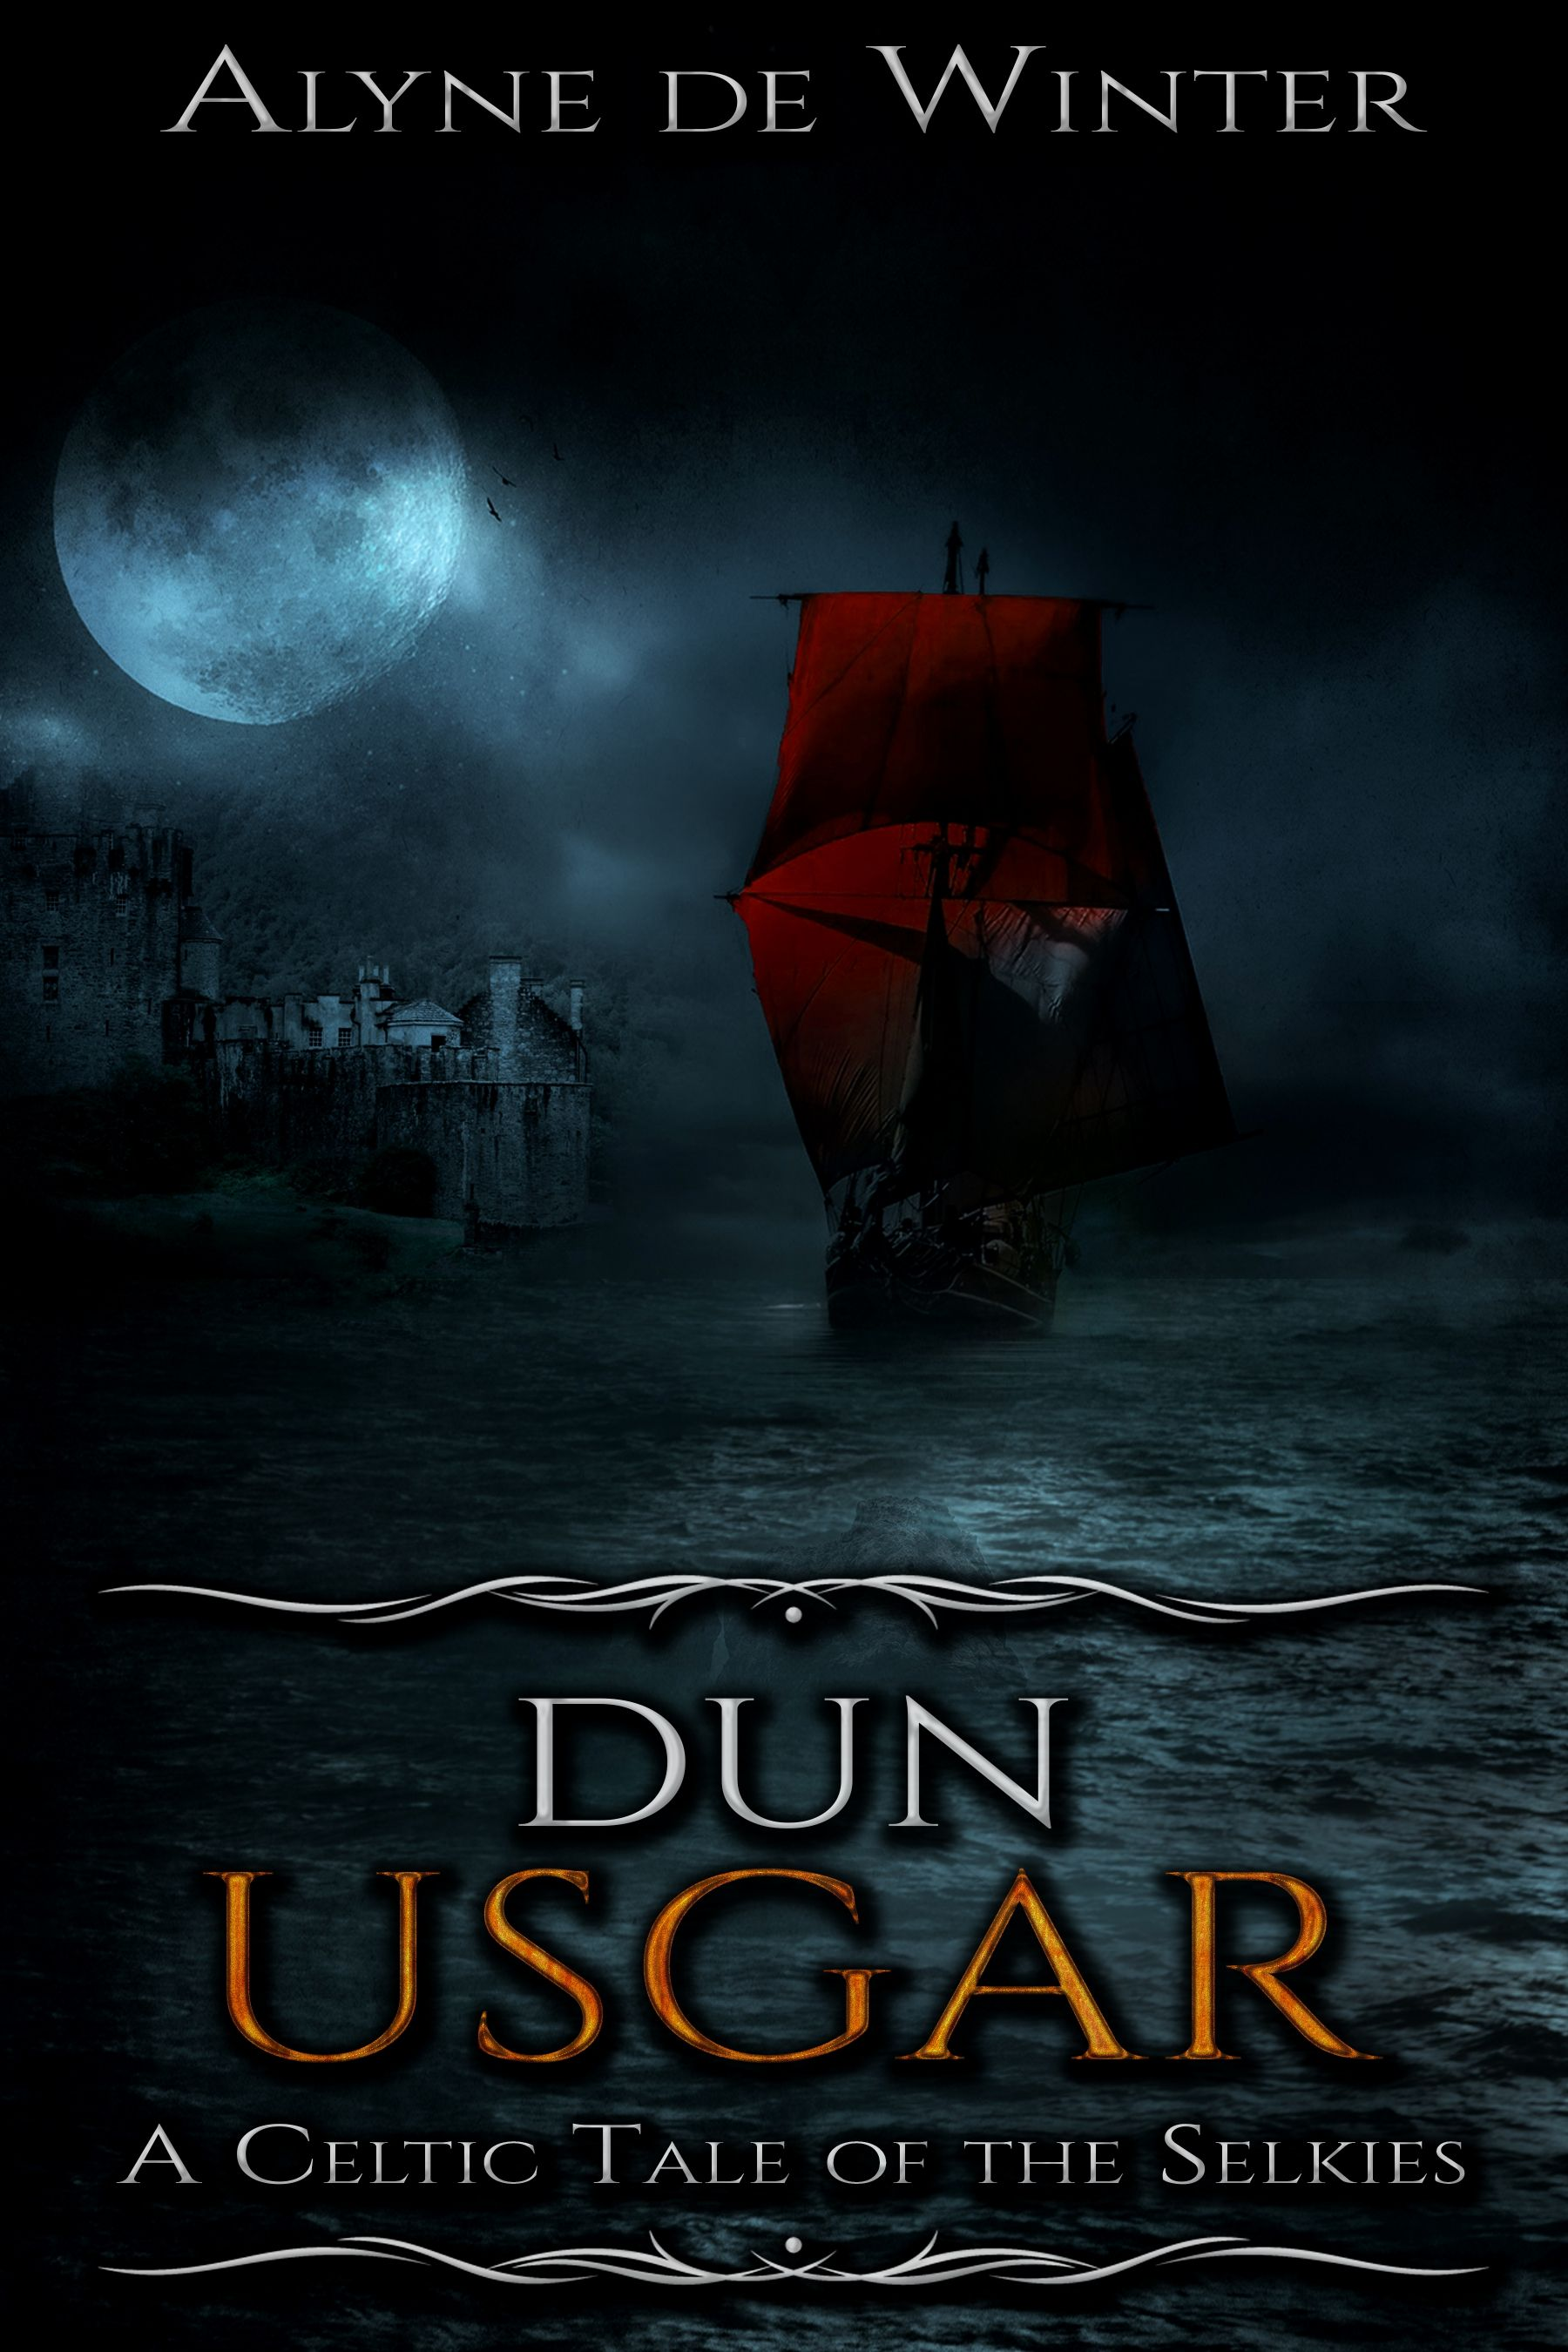 Check out a great Dark and Stormy fantasy of the sea and